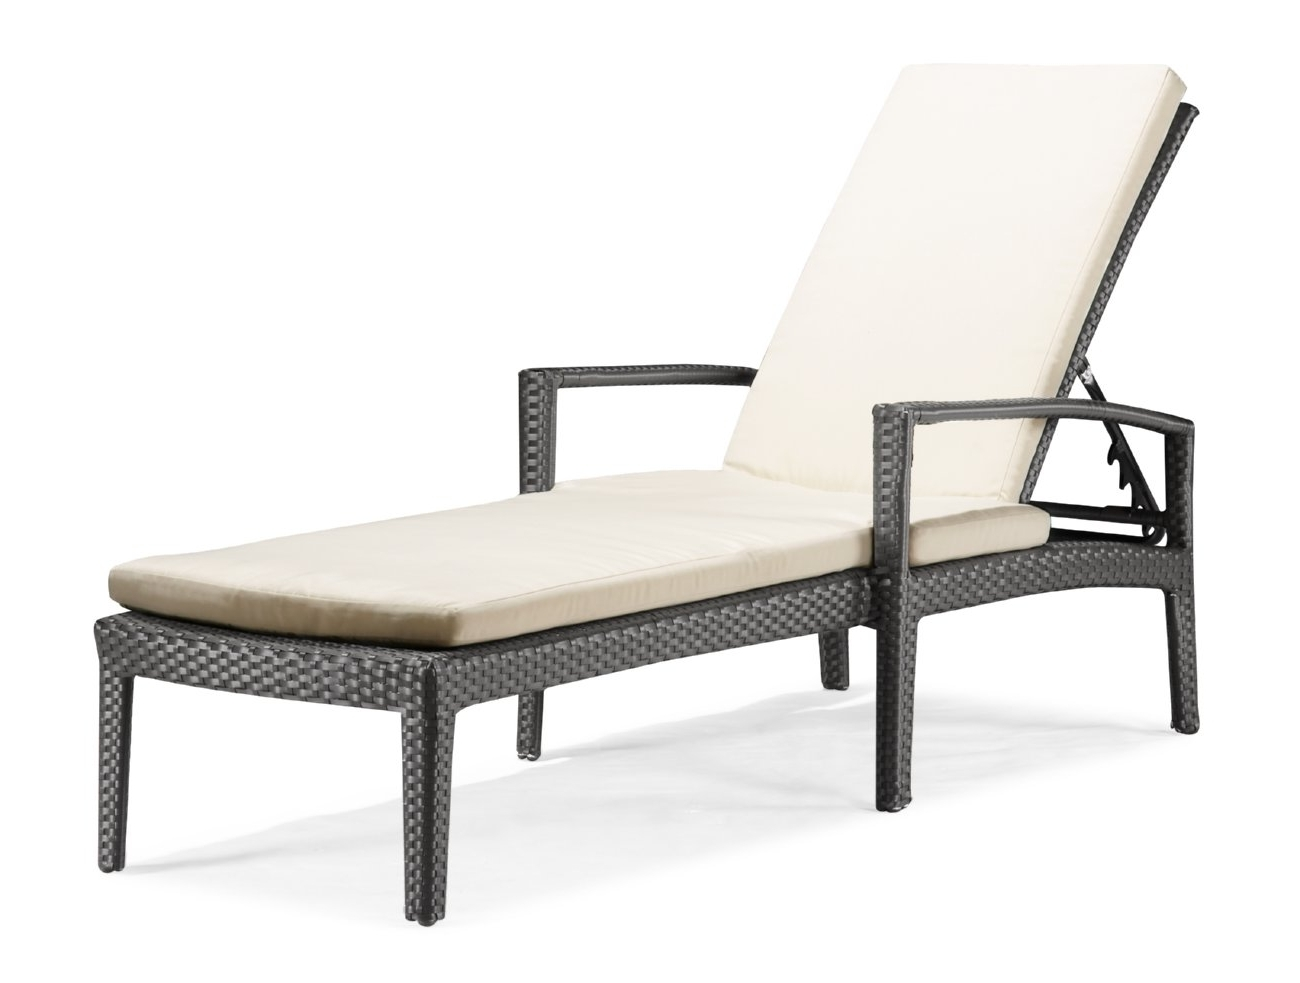 Widely Used Chaise Lounge Chairs For Pool Area Pertaining To Lounge Chair : Patio Table Patio Furniture Cushions Double Lounge (View 12 of 15)